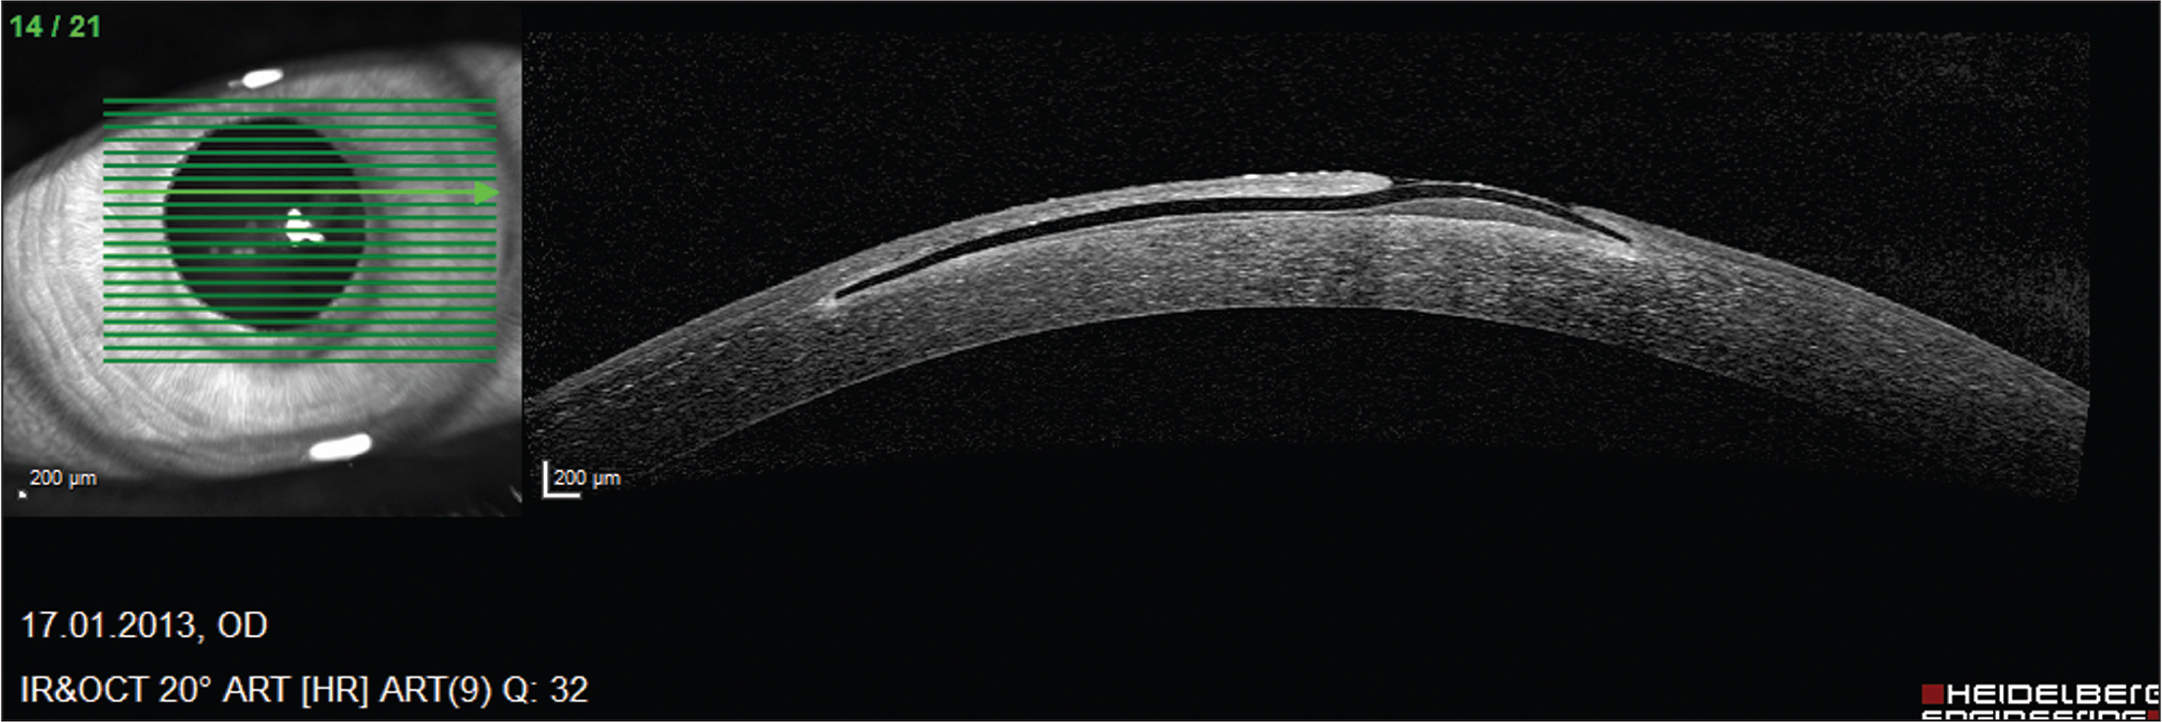 Anterior segment optical coherence tomography (Spectralis OCT; Heidelberg Engineering, Heidelberg, Germany) displaying flap melt immediately before explantation of corneal inlay.